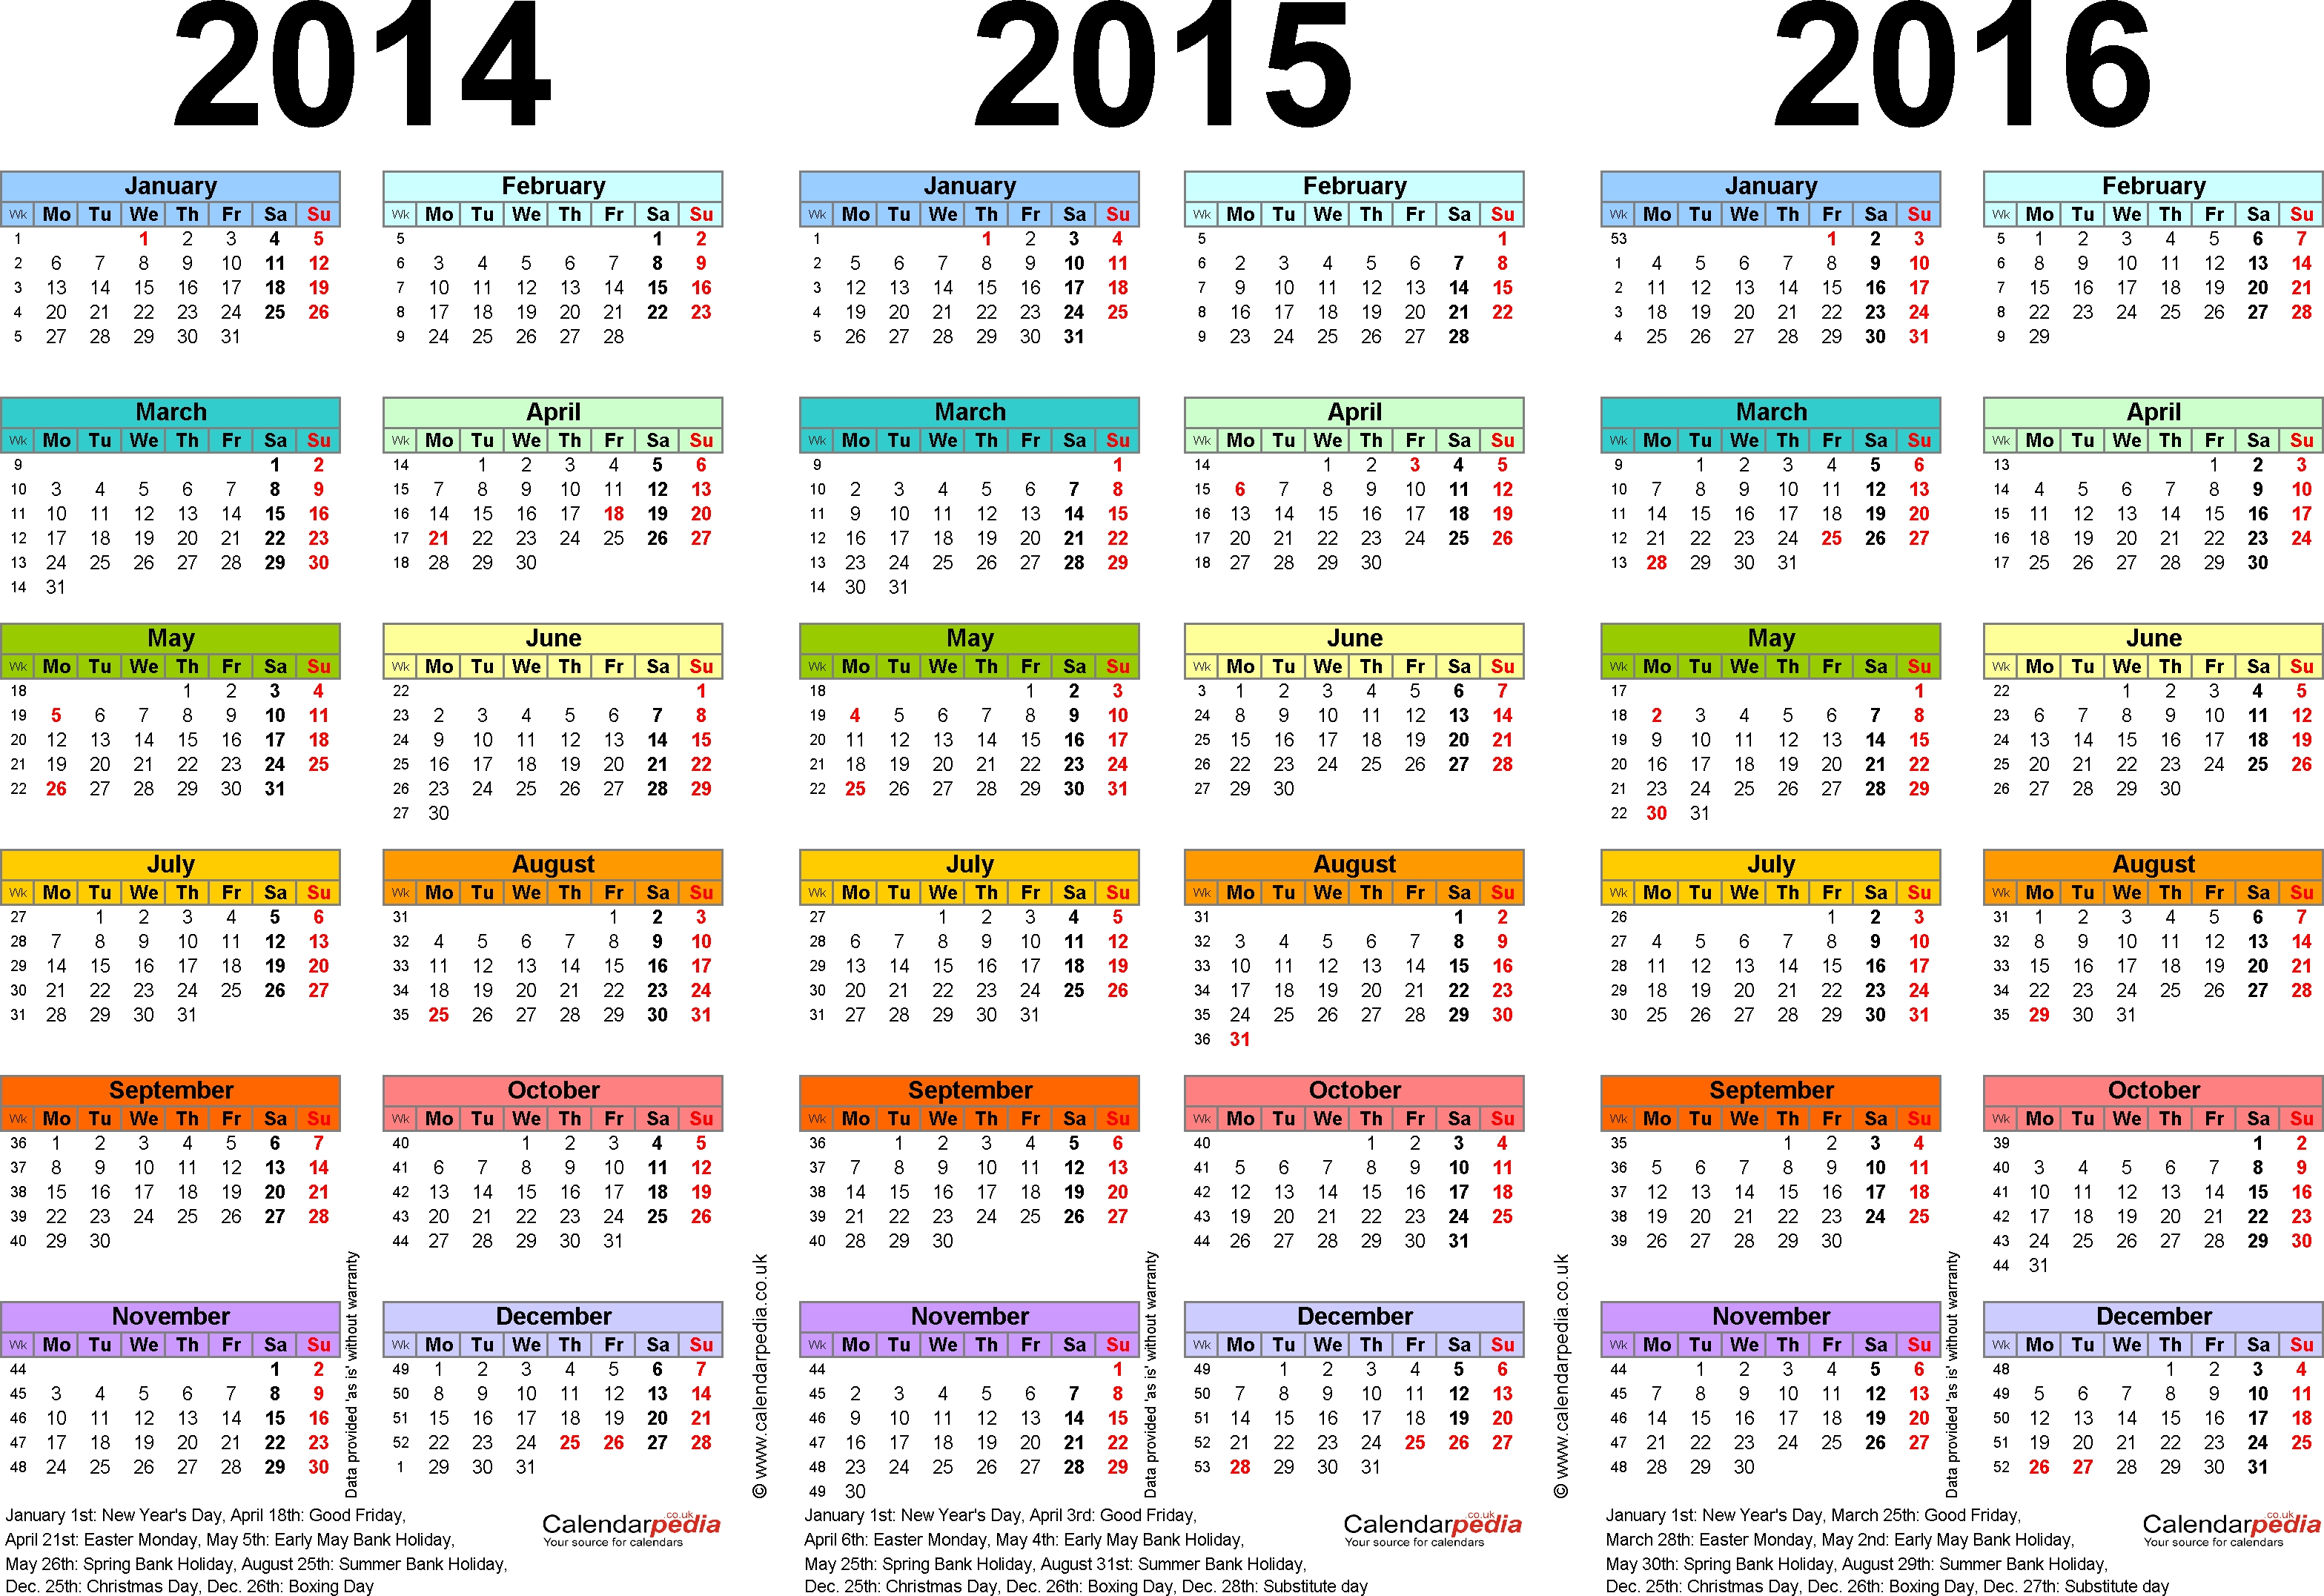 Three Year Calendars For 2014, 2015 & 2016 (Uk) For Pdf  Printable Yearly Calendar 2014 2015